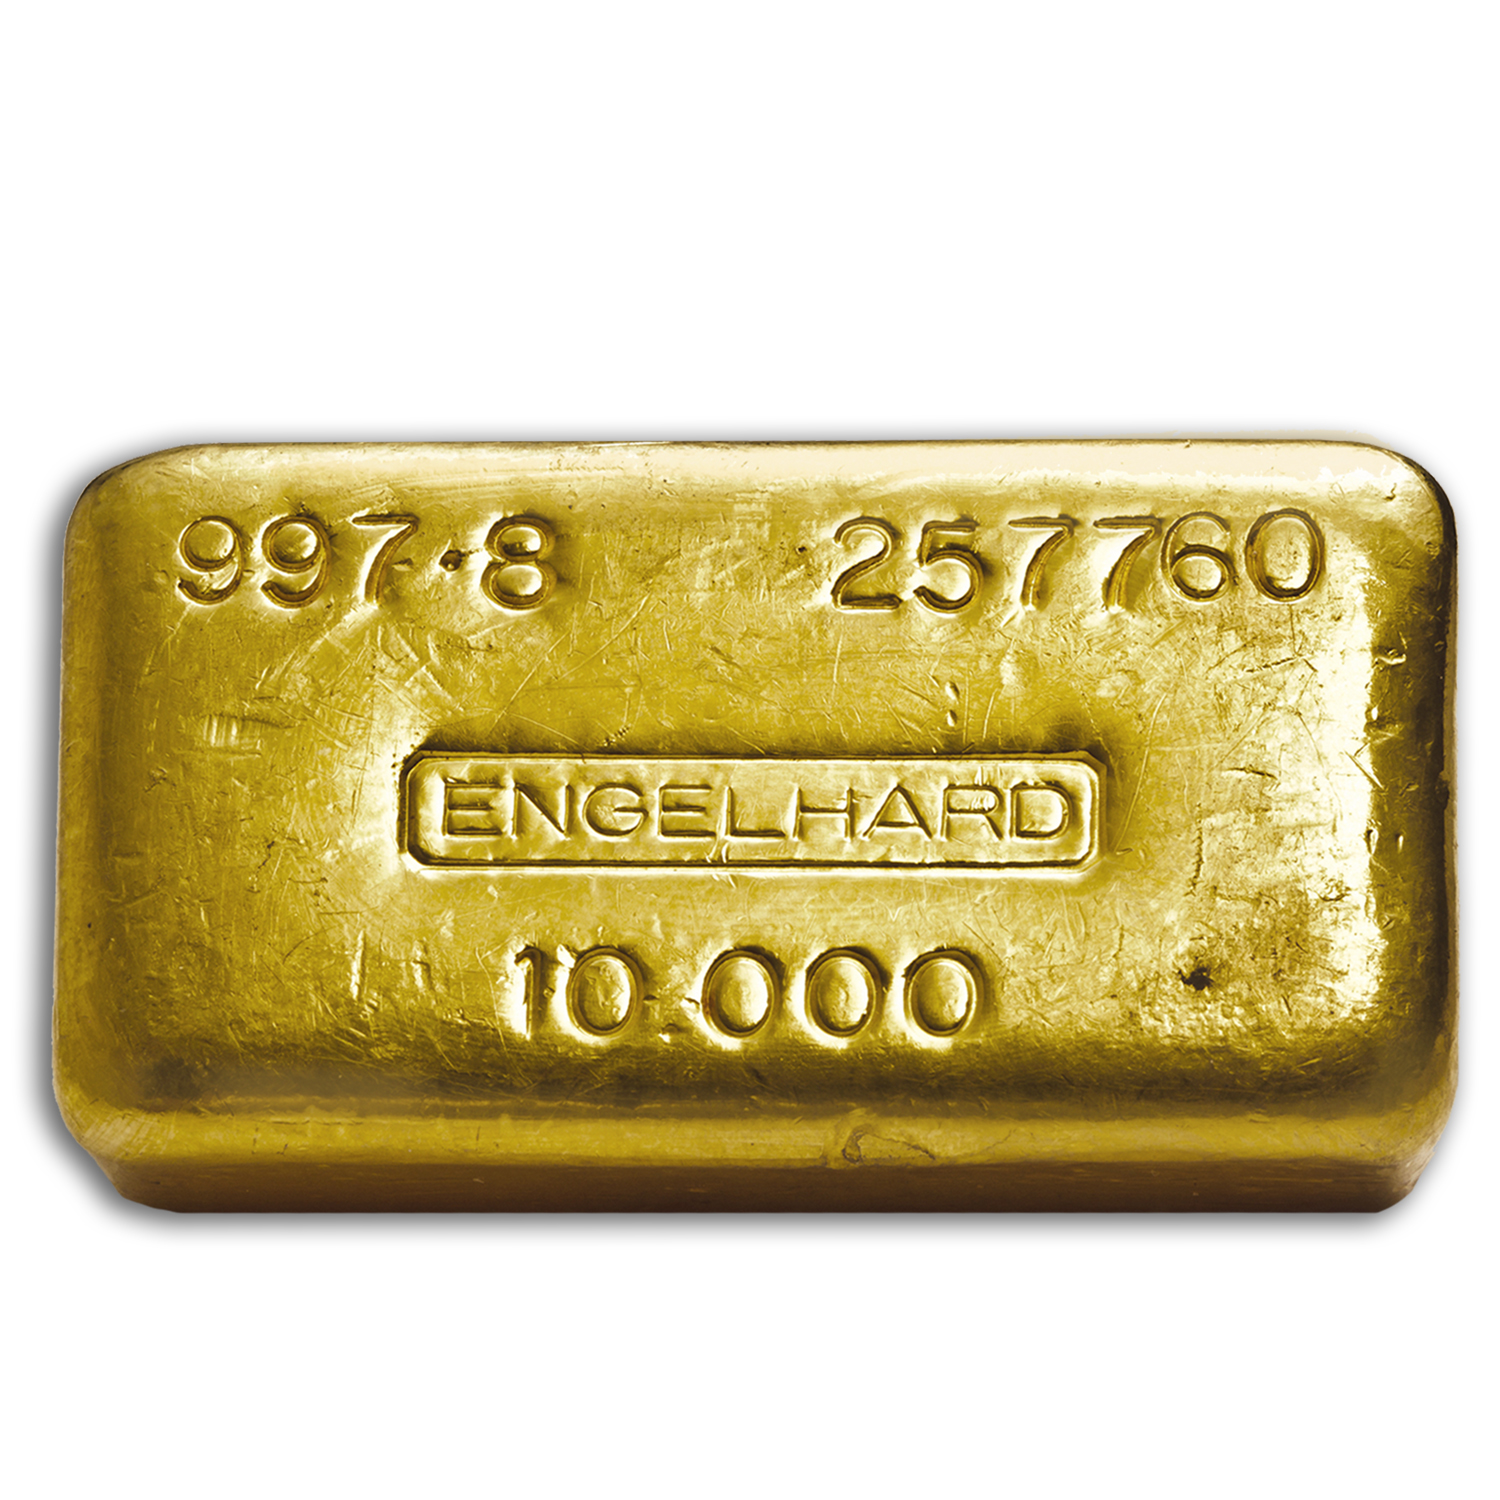 10 oz Gold Bars - Engelhard (Poured/Loaf Style, 997.8 Fine)